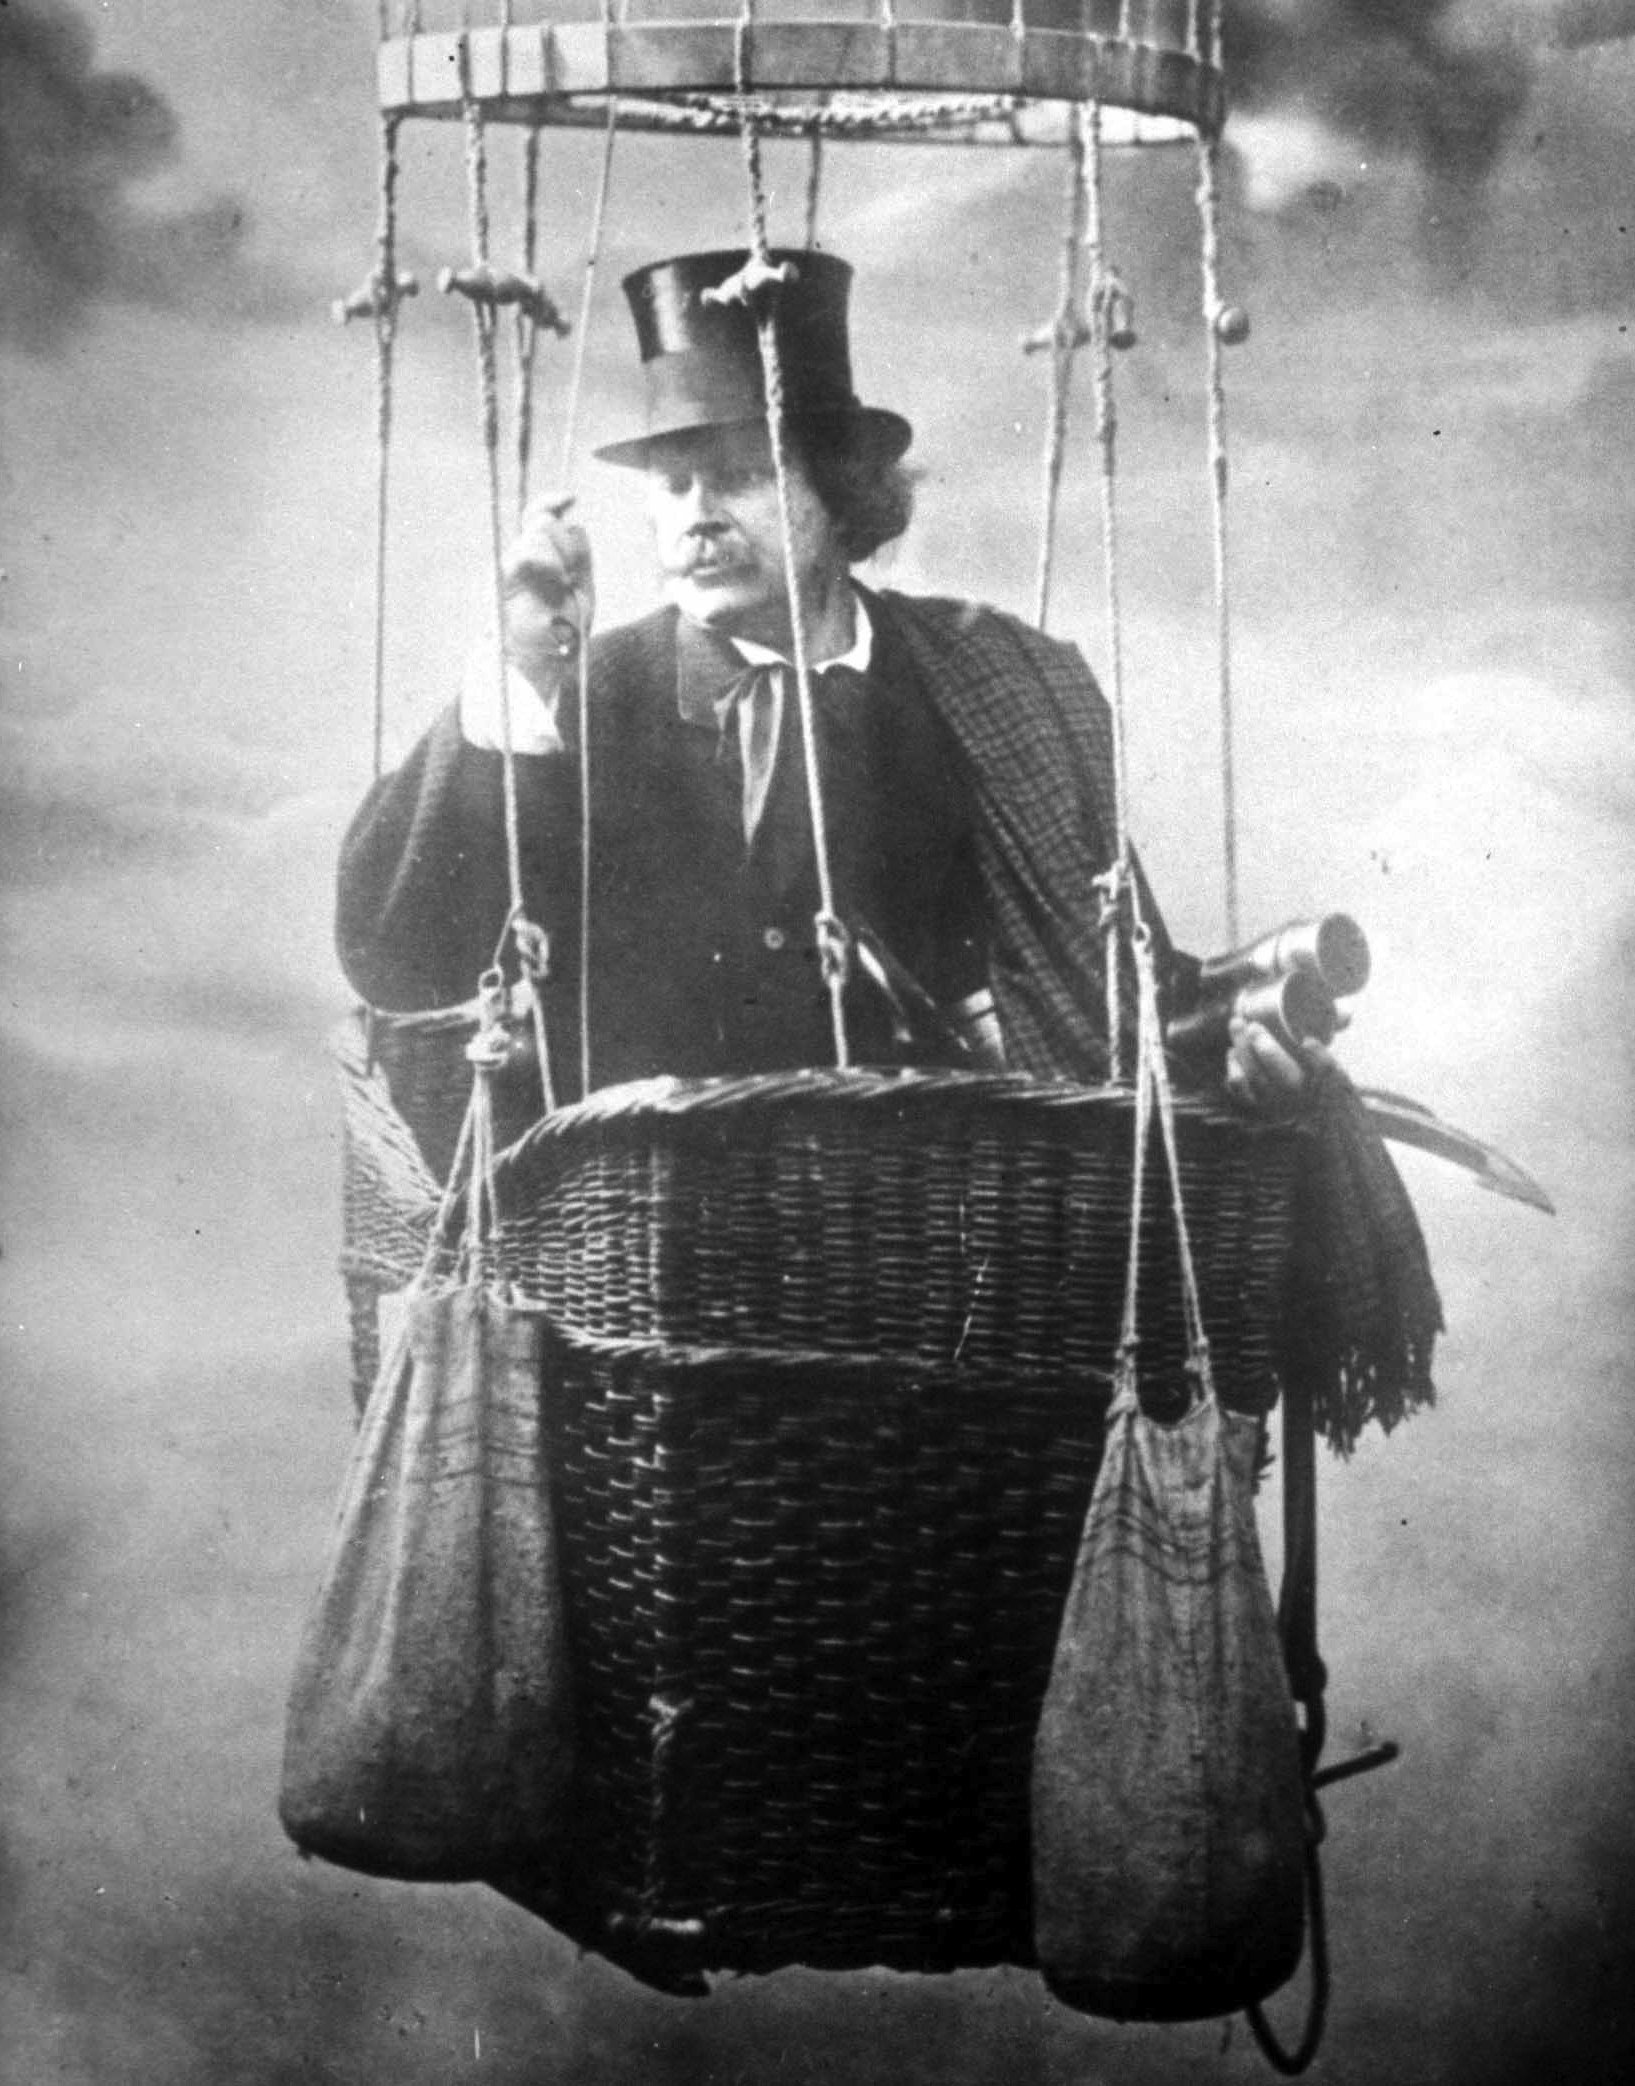 The French photographer and balloonist Gaspard-Félix Tournachon, widely known as Nadar (posing in a studio).